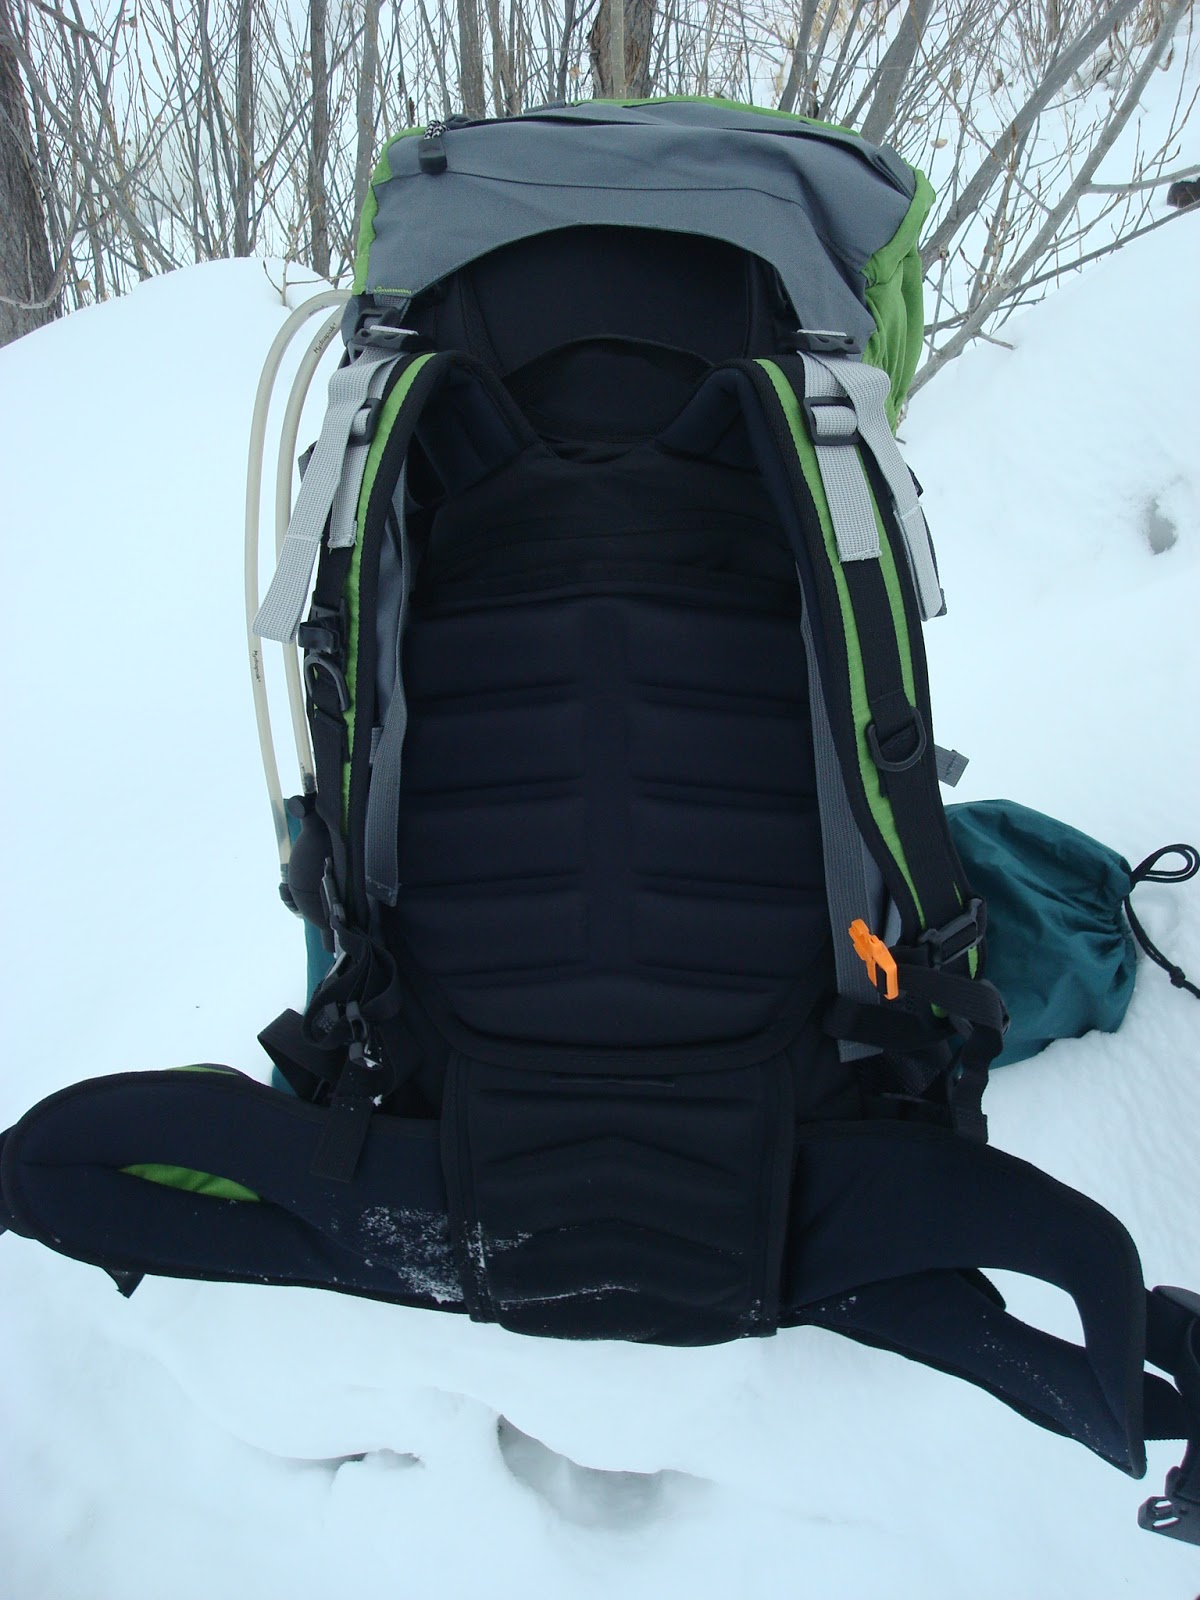 Teton Sports Escape 4300 ultralight pack